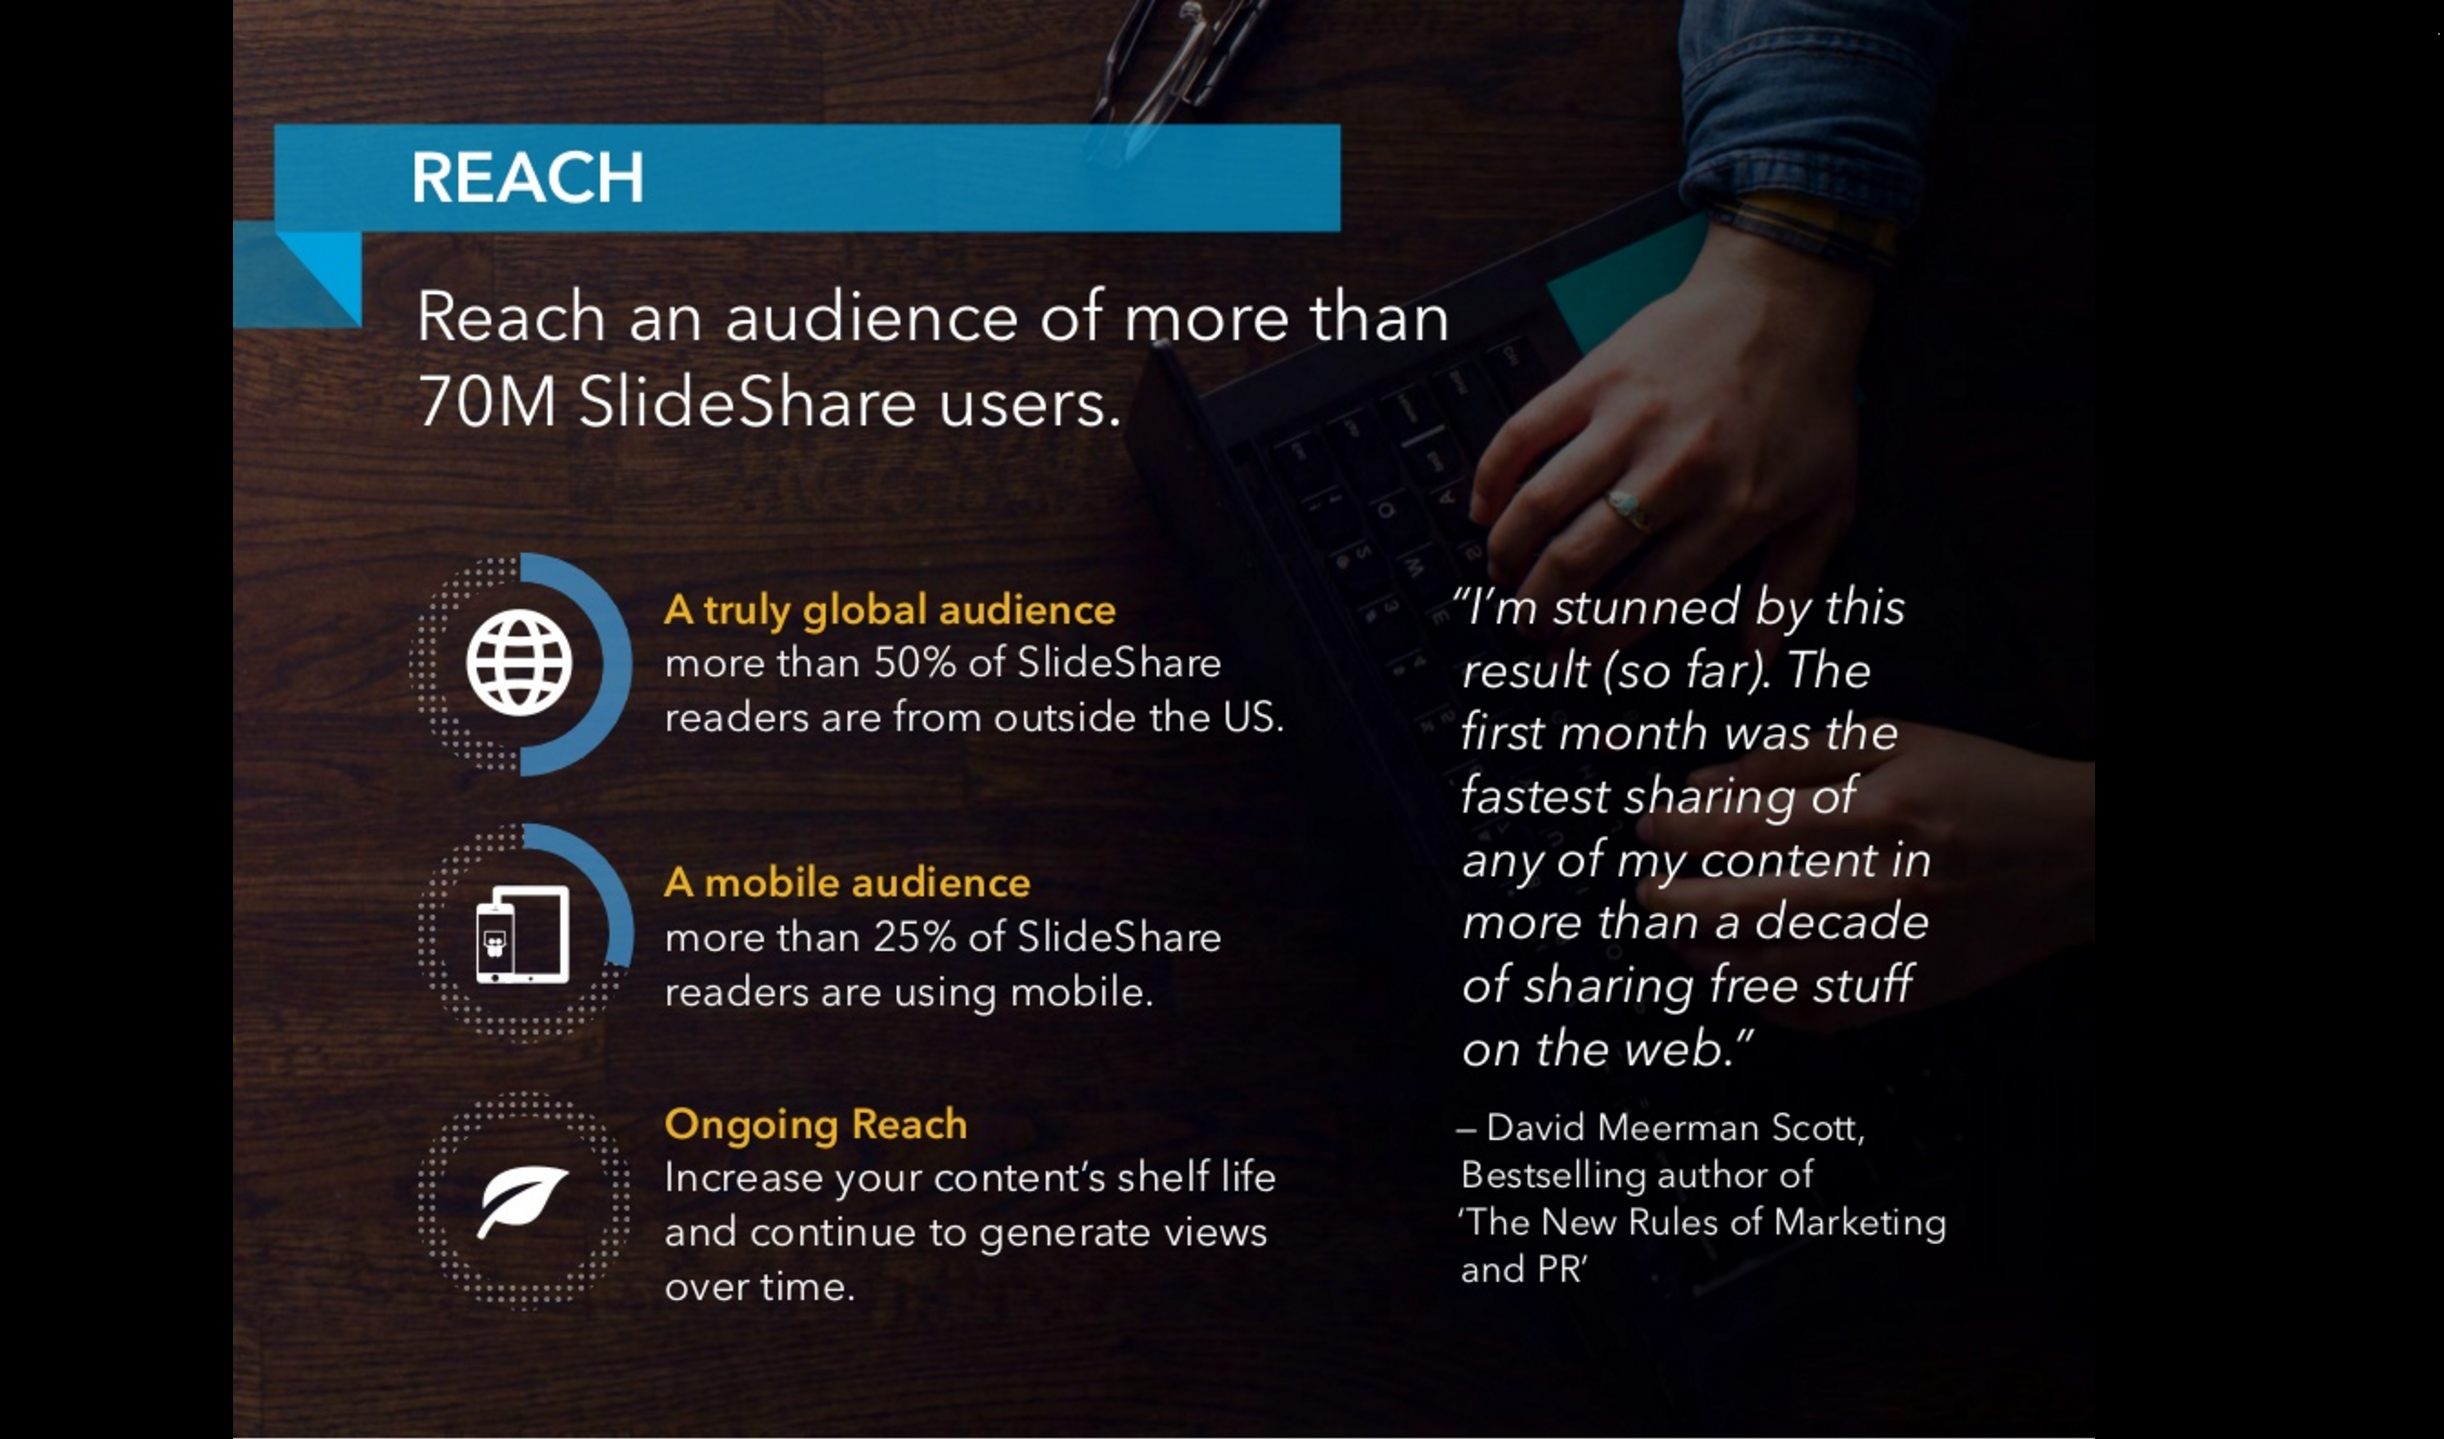 Slideshare's description of their audience